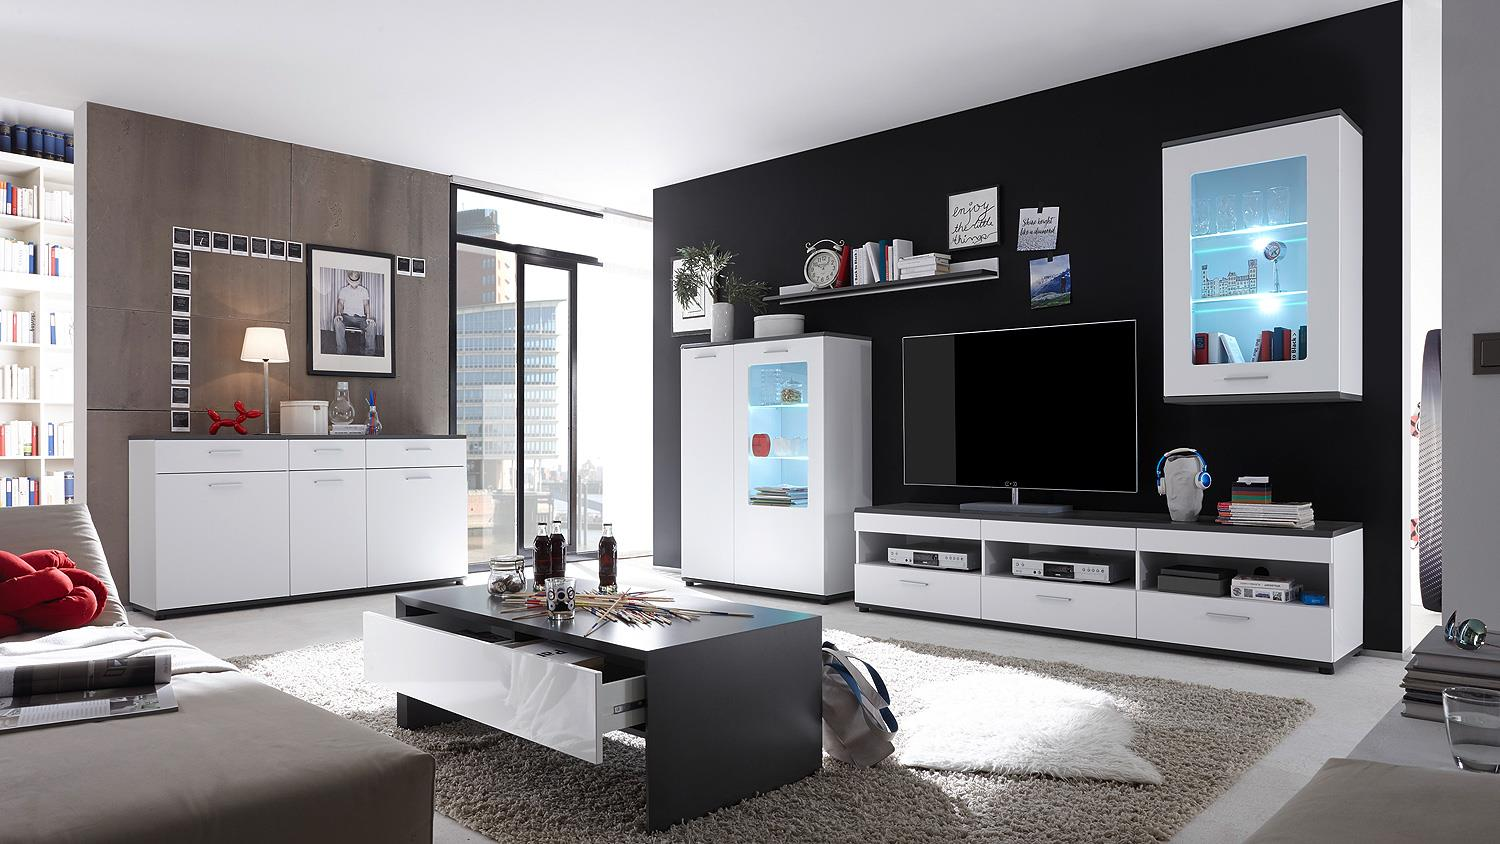 wohnwand 1 jump in mdf wei und grau inkl led beleuchtung. Black Bedroom Furniture Sets. Home Design Ideas